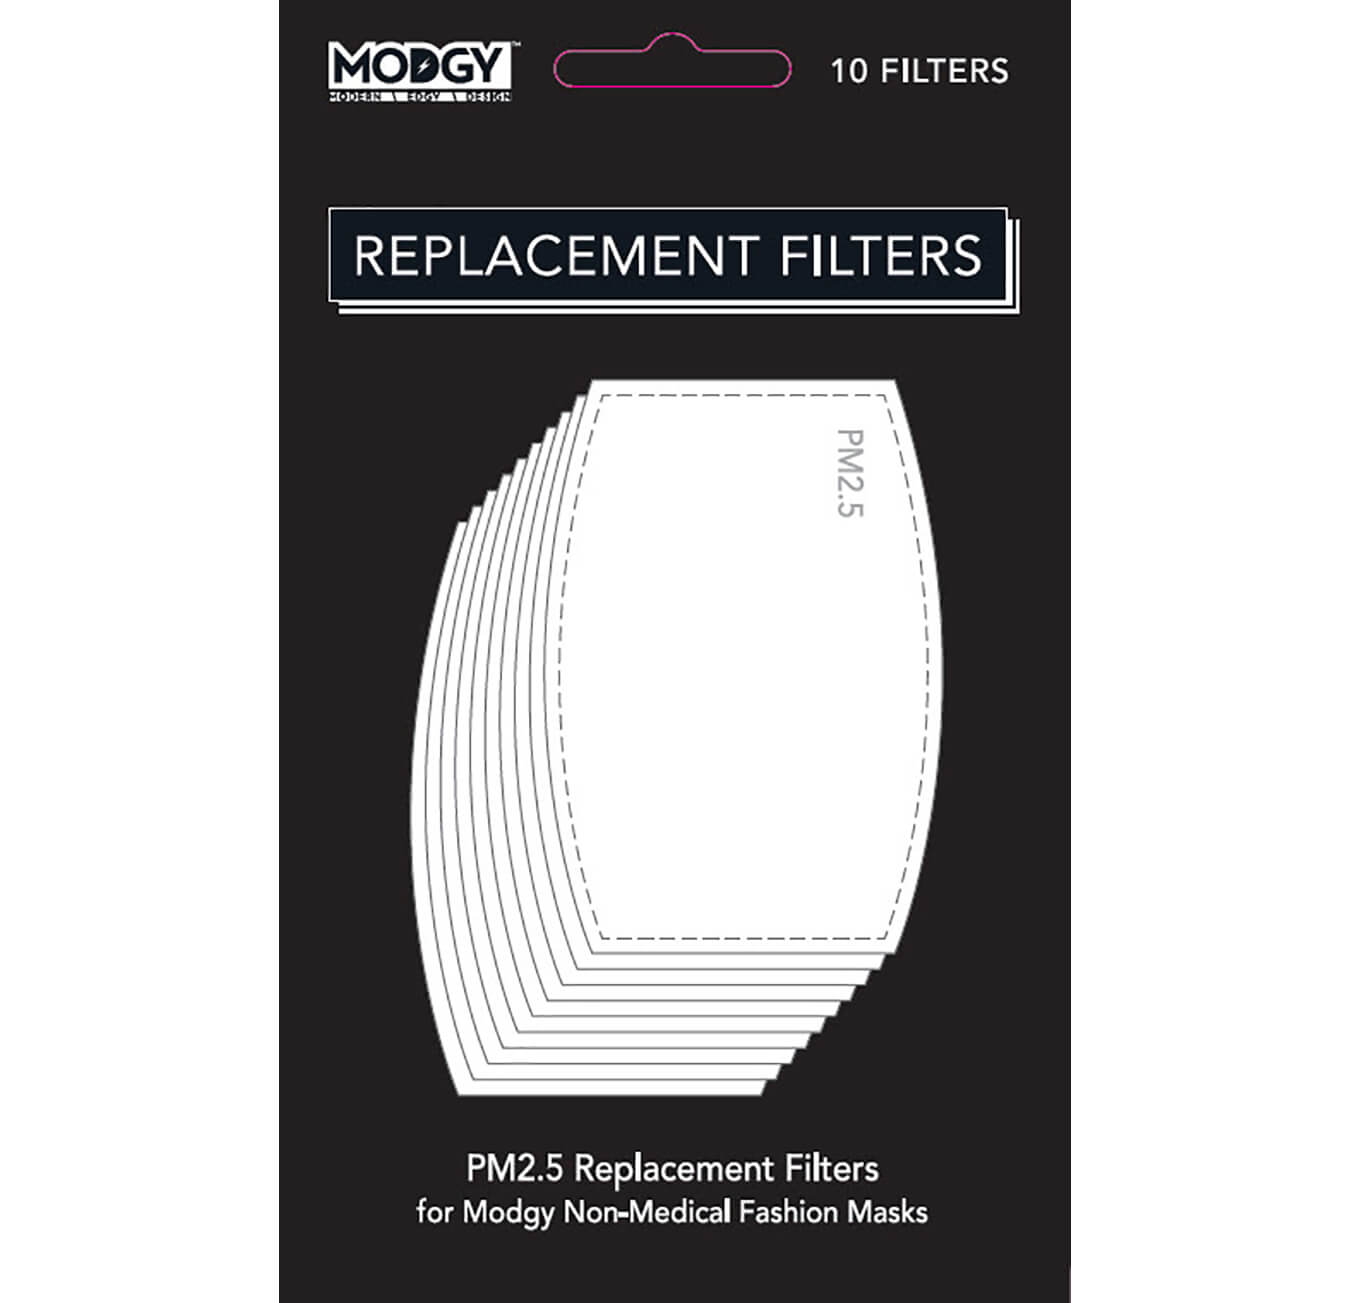 PM2.5 Replacement Filters (10 pack)